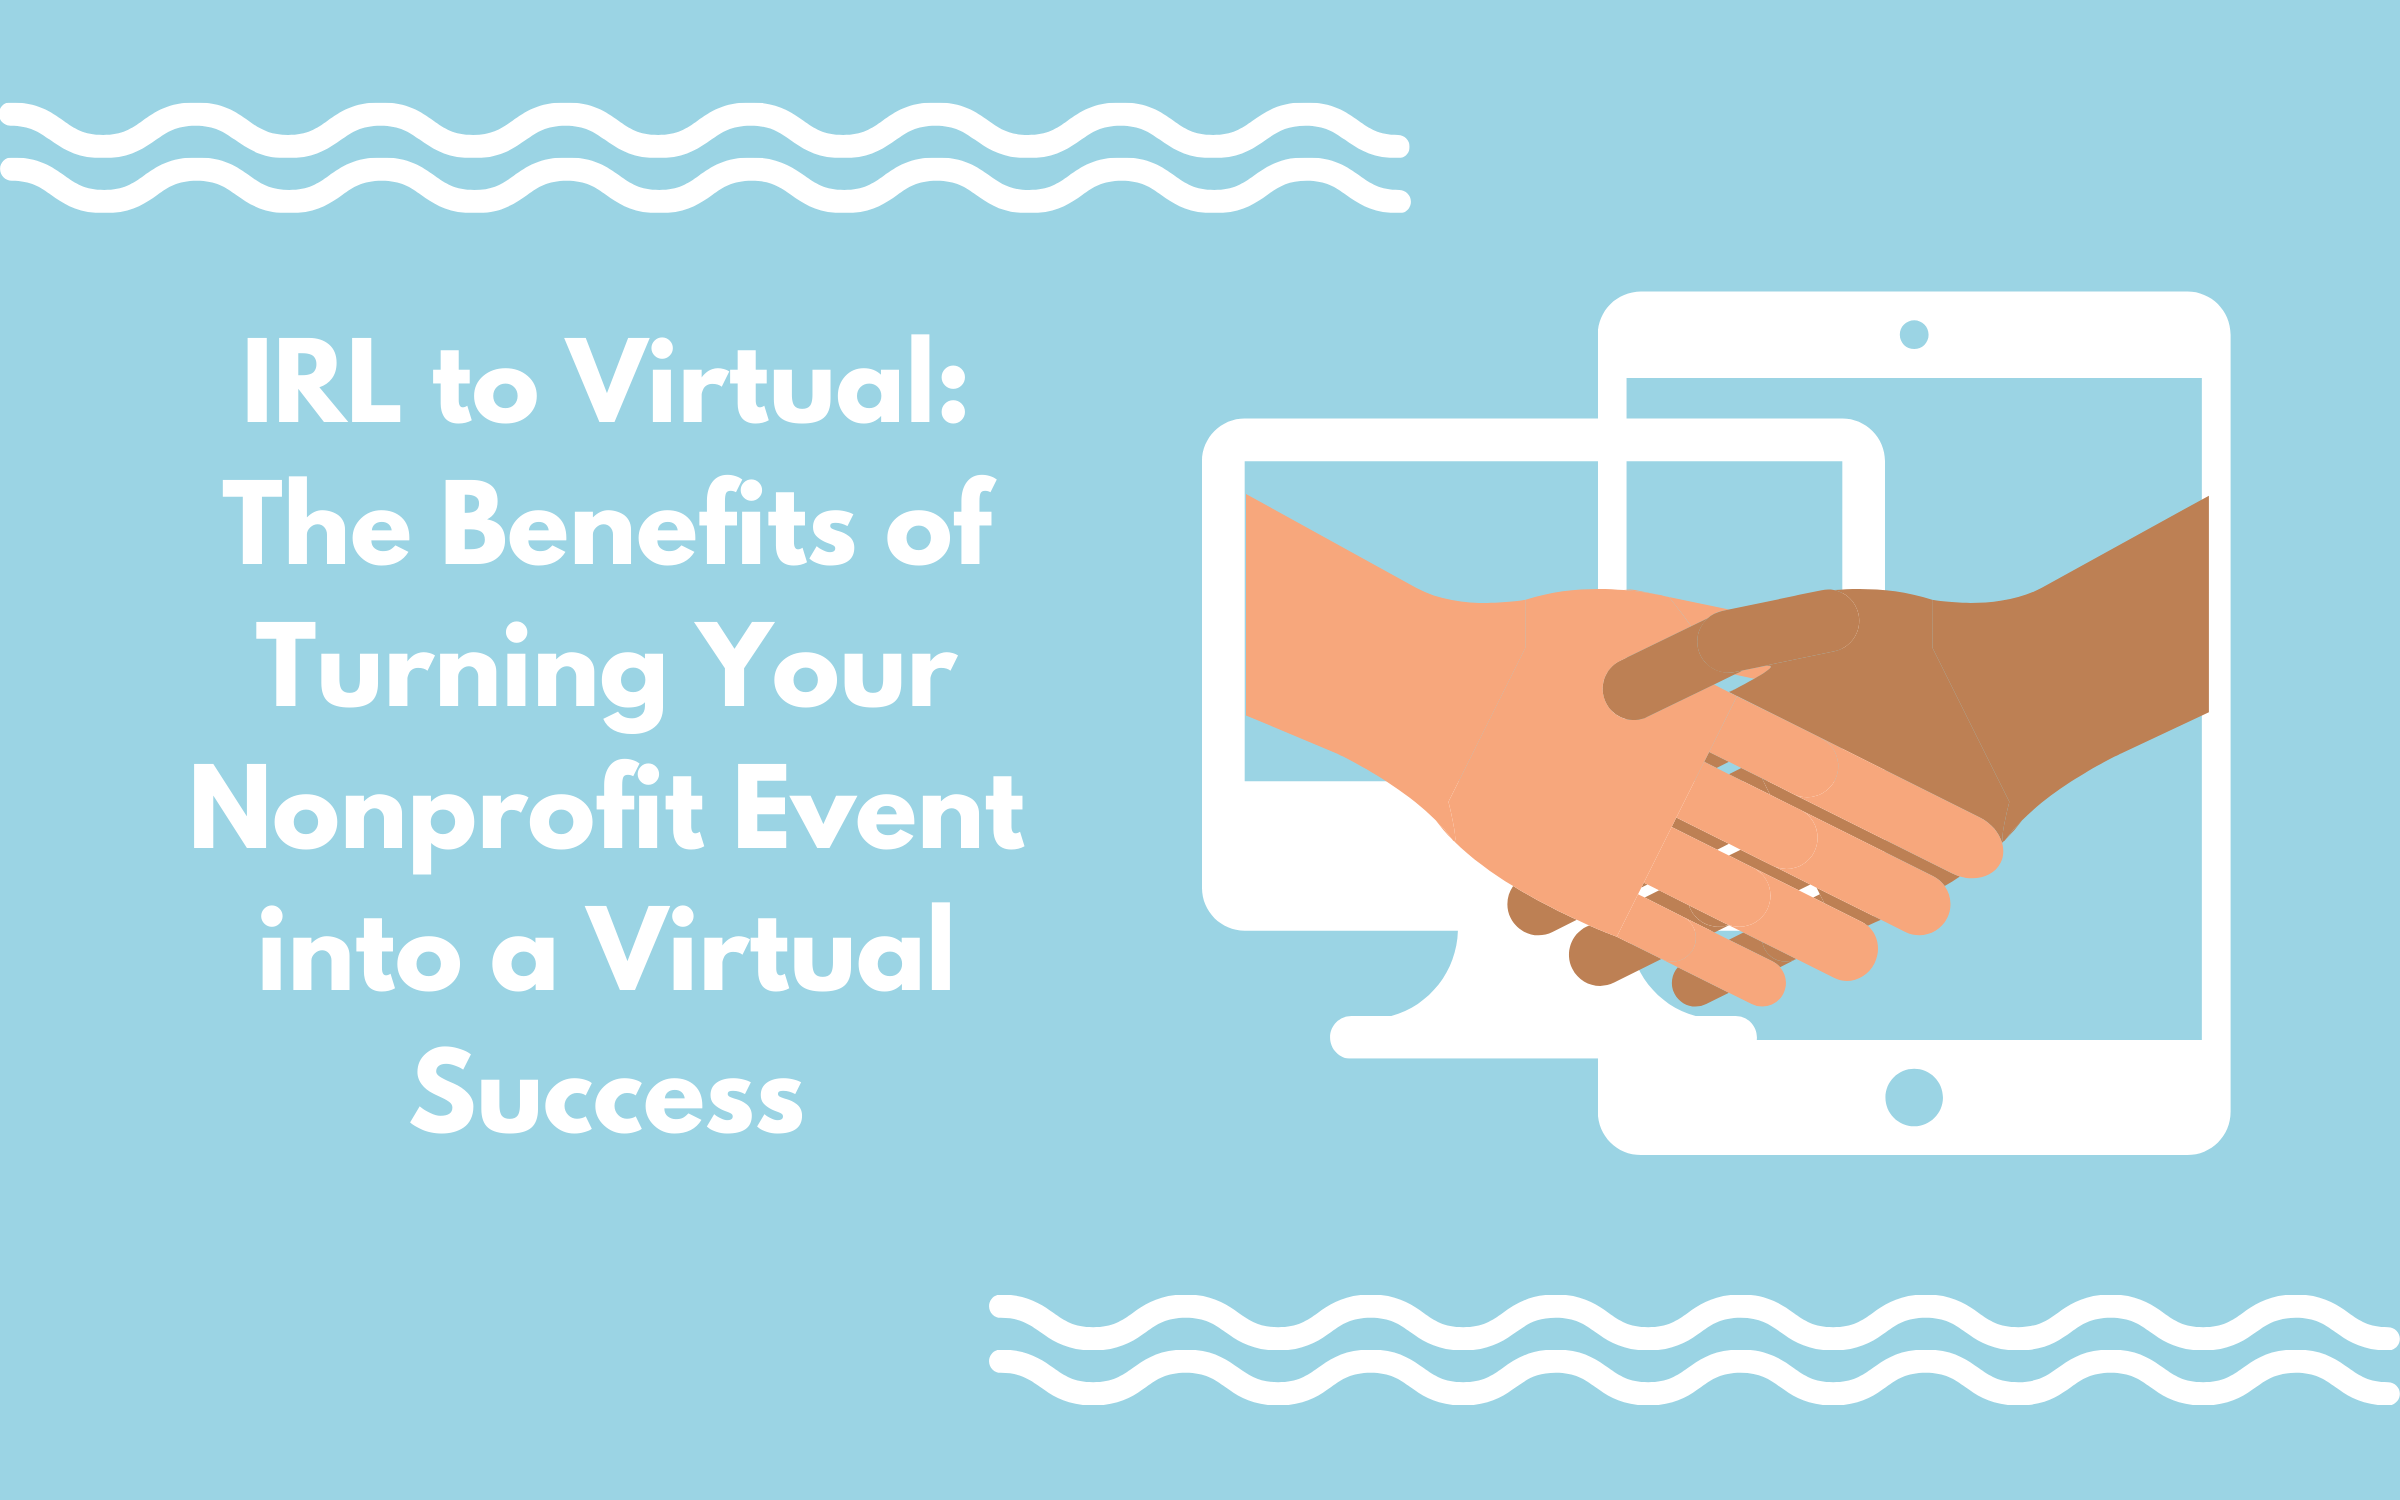 Benefits of Turning Your Nonprofit Event into a Virtual Success